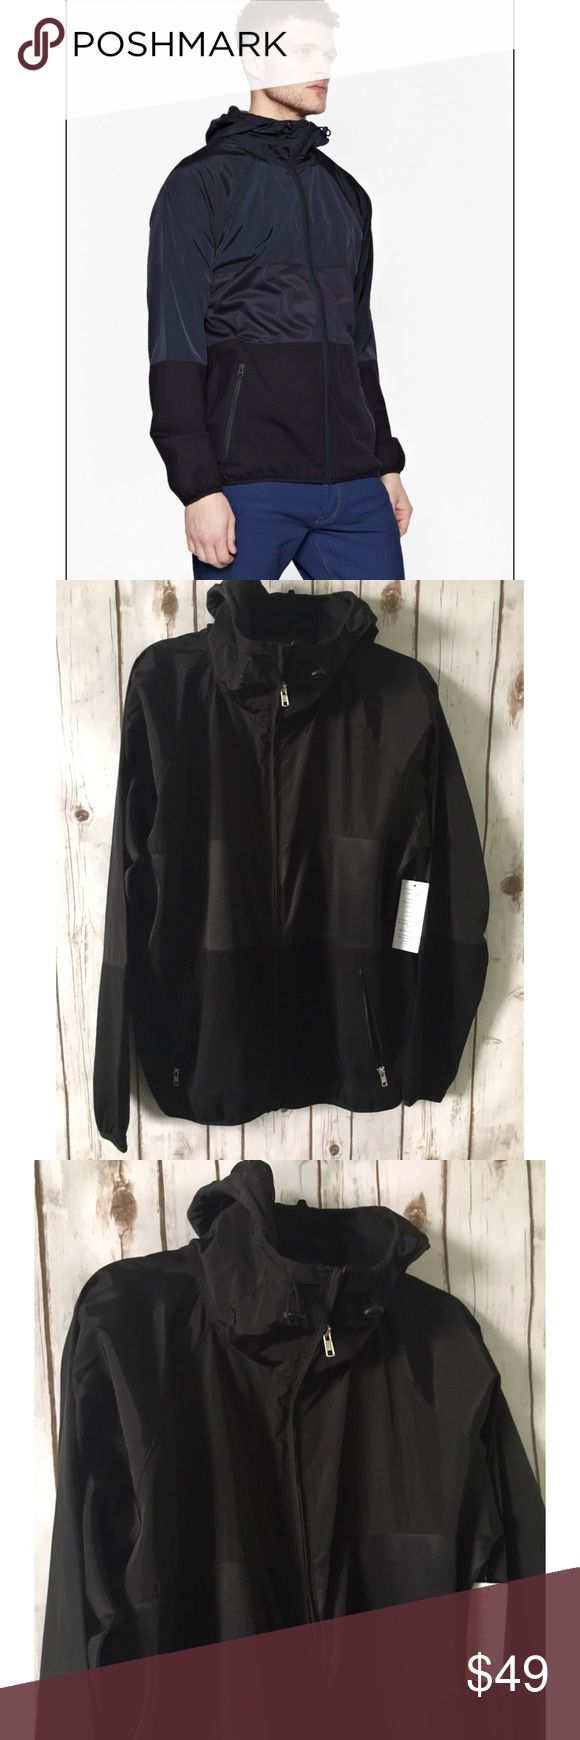 NWT men's French connection jacket size medium NWT men's black French connection mixed nylon hooded jacket size medium. Really nice ! High neckline with toggles. Length is 71 cm. French Connection Jackets & Coats